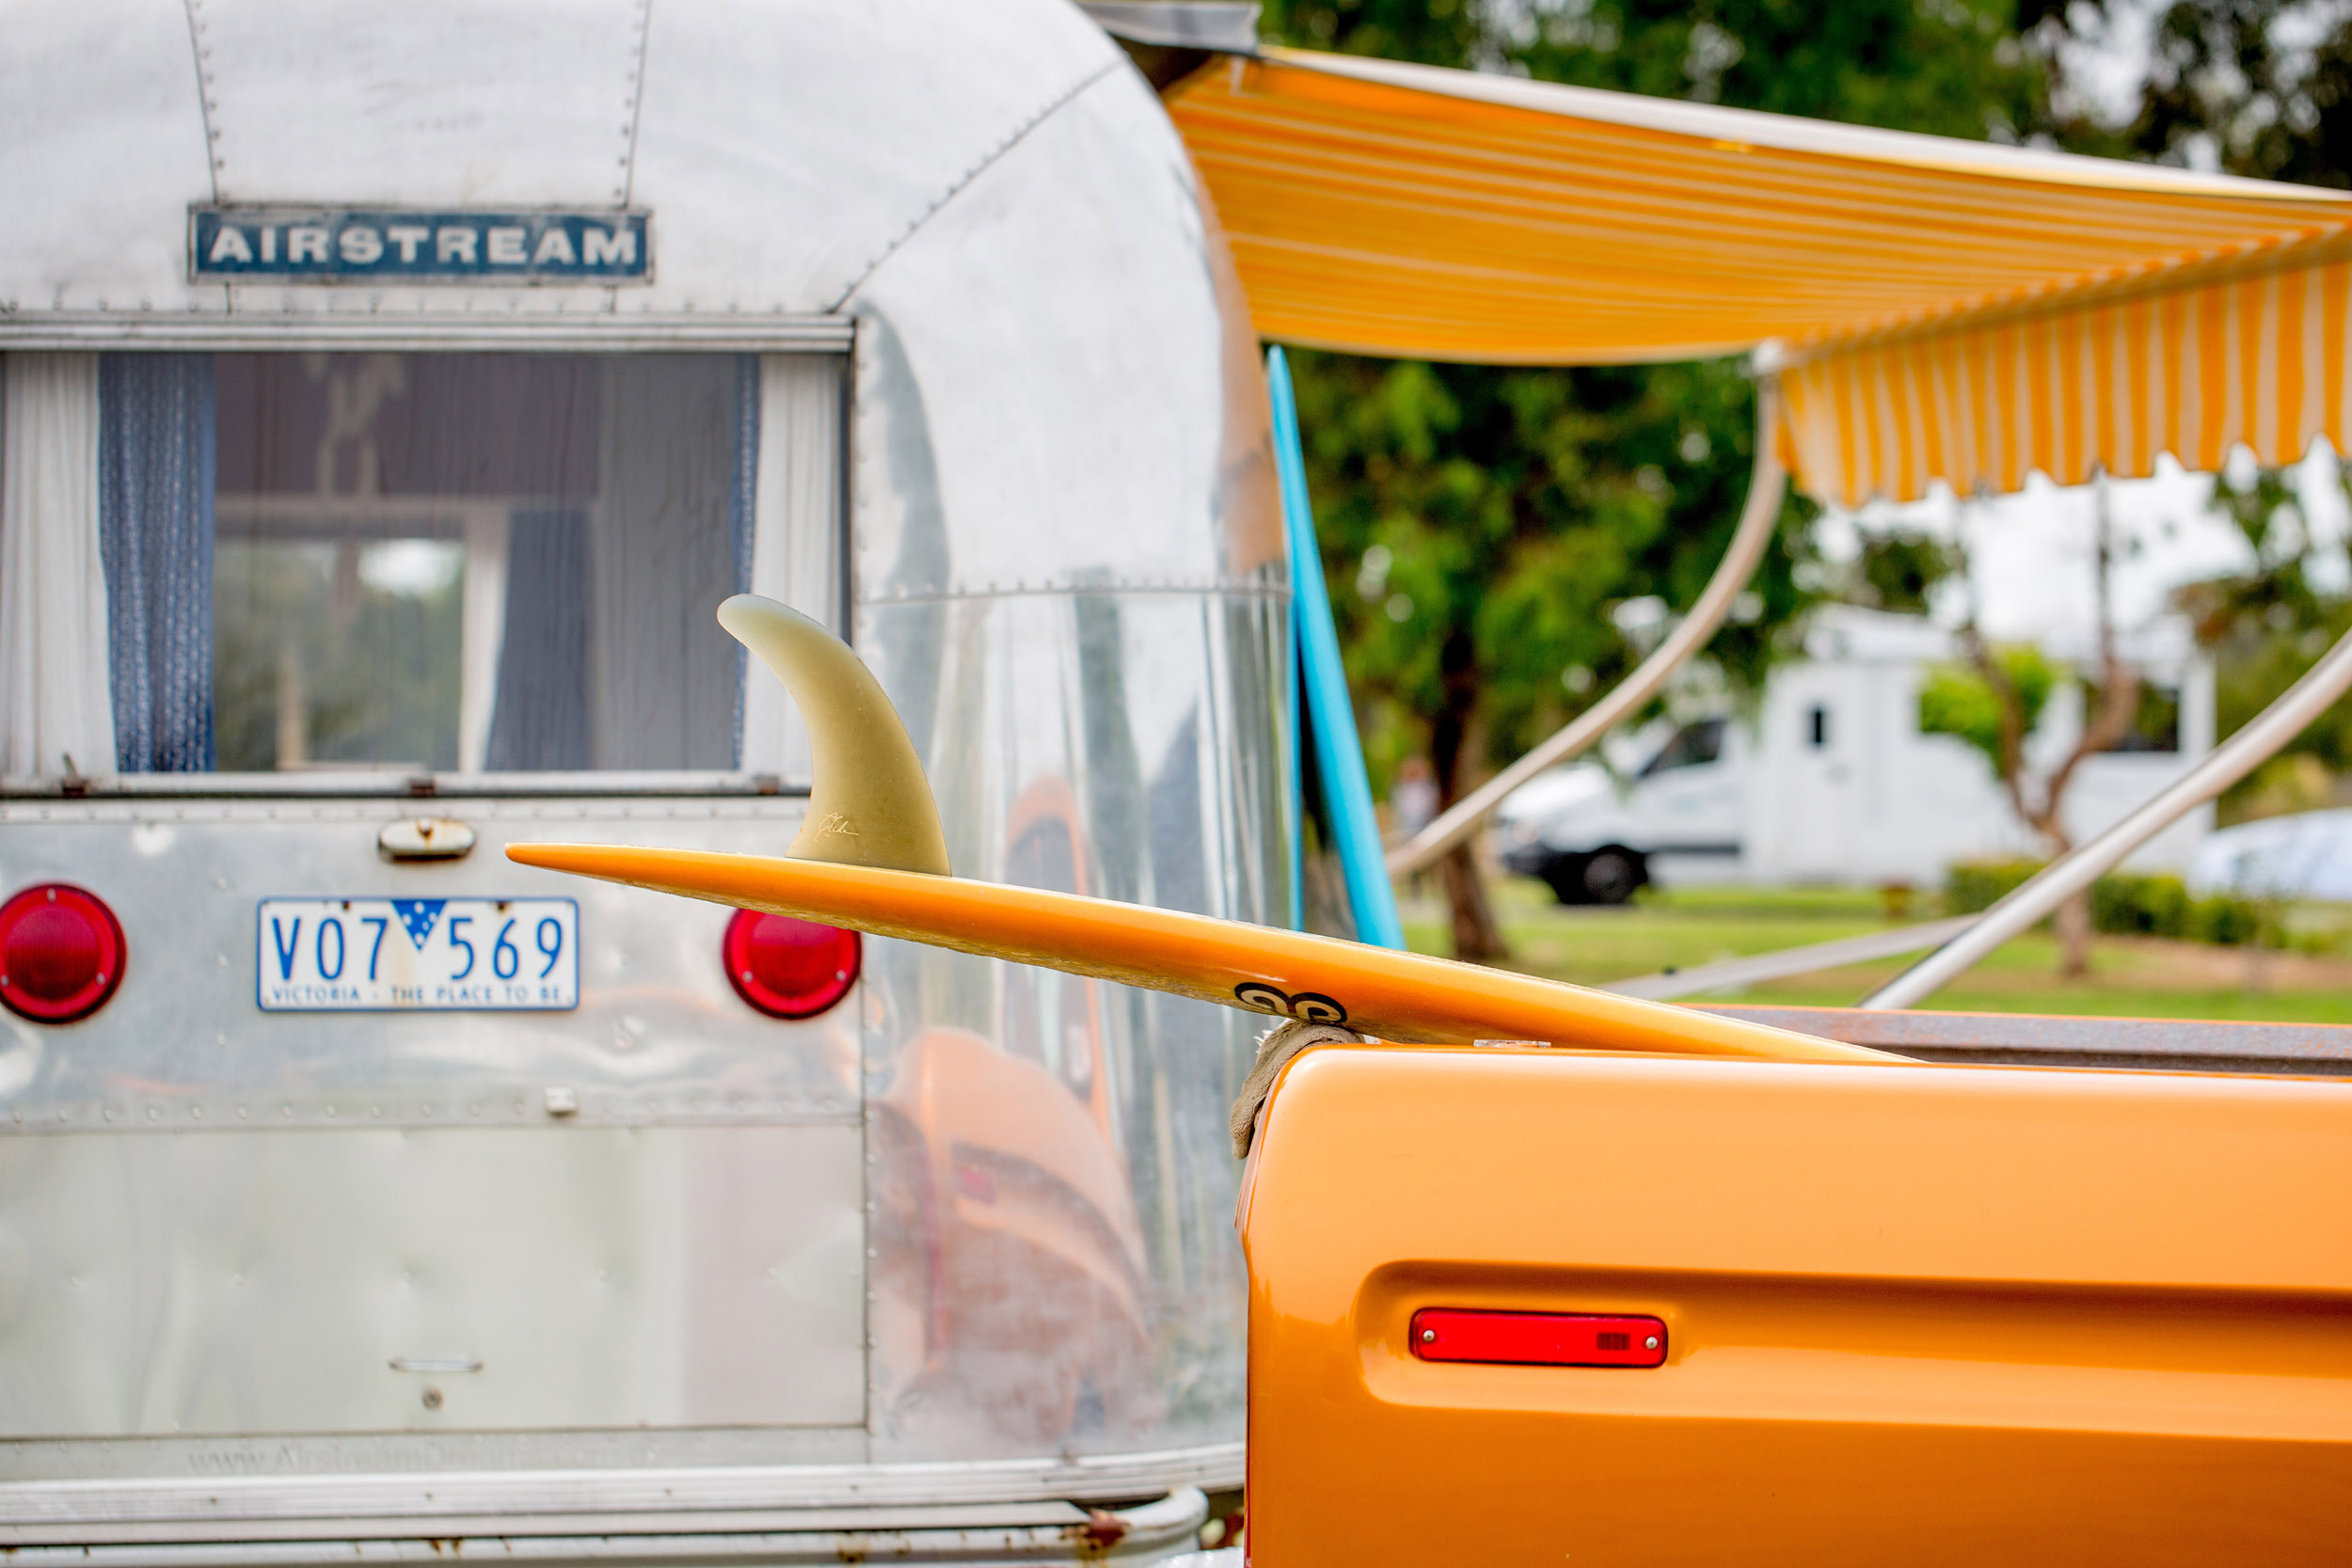 vintage-caravan-surfboard-holiday-park-photography.jpg